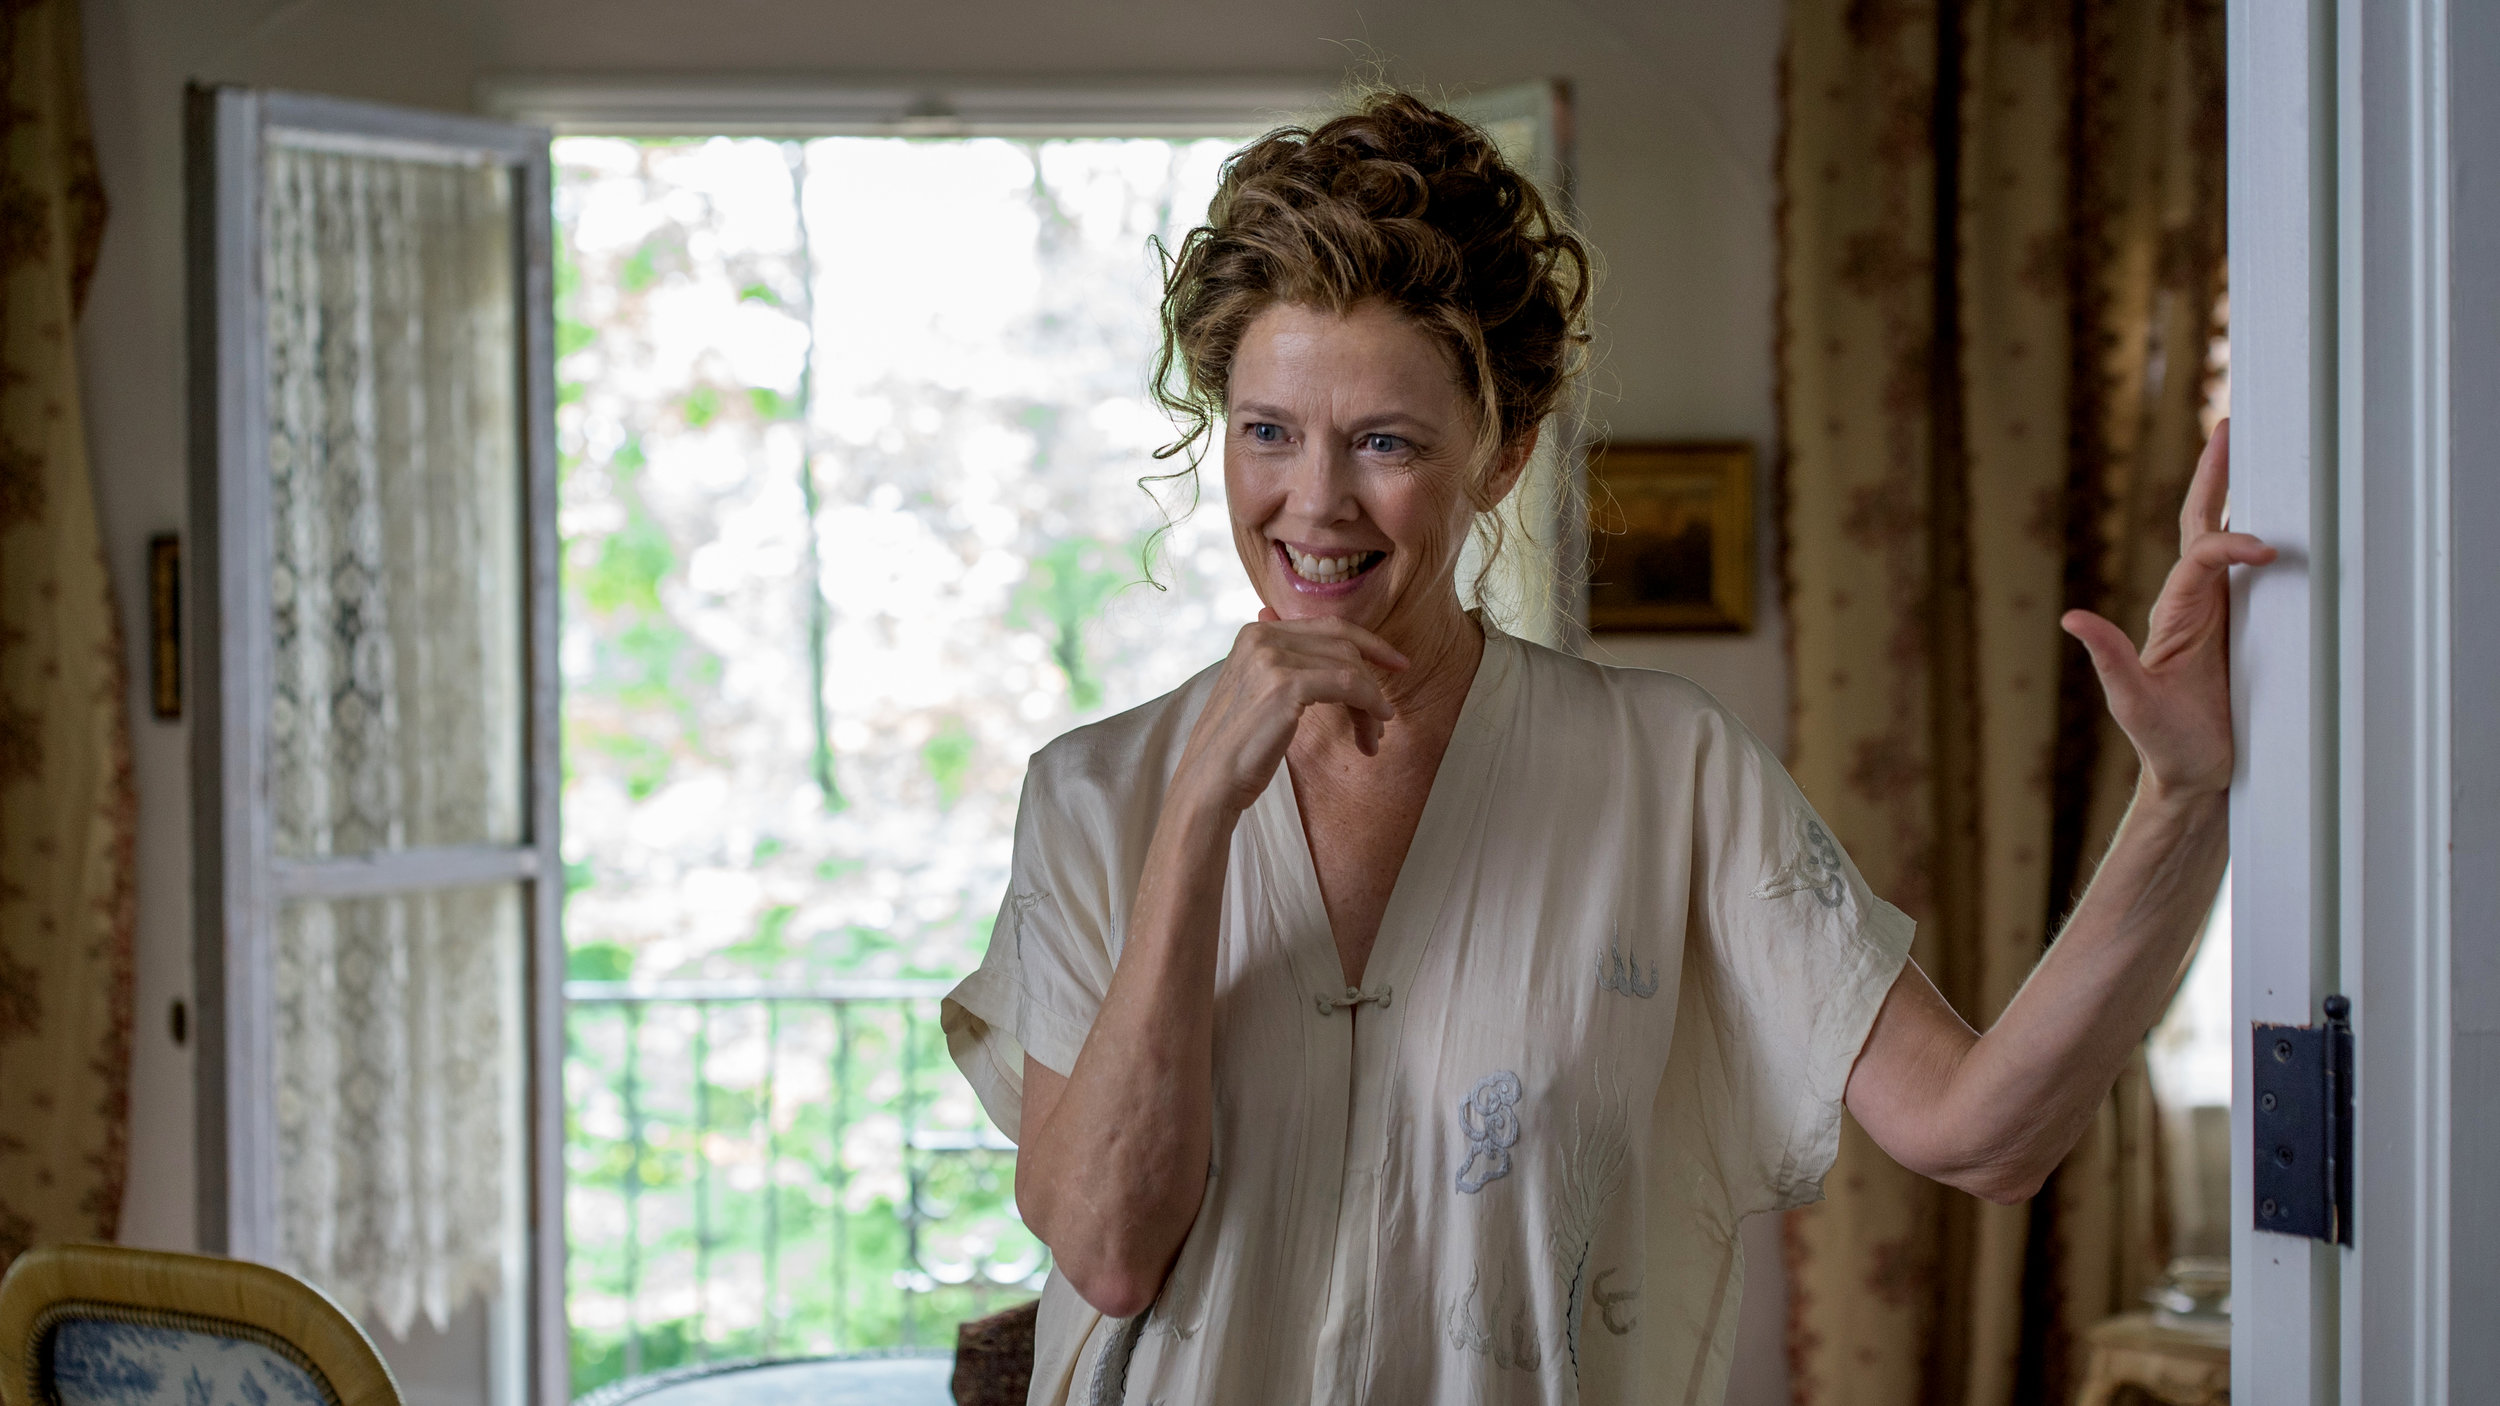 Annette Bening as the aging diva Irina in the film adaptation of Chekhov's The Seagull